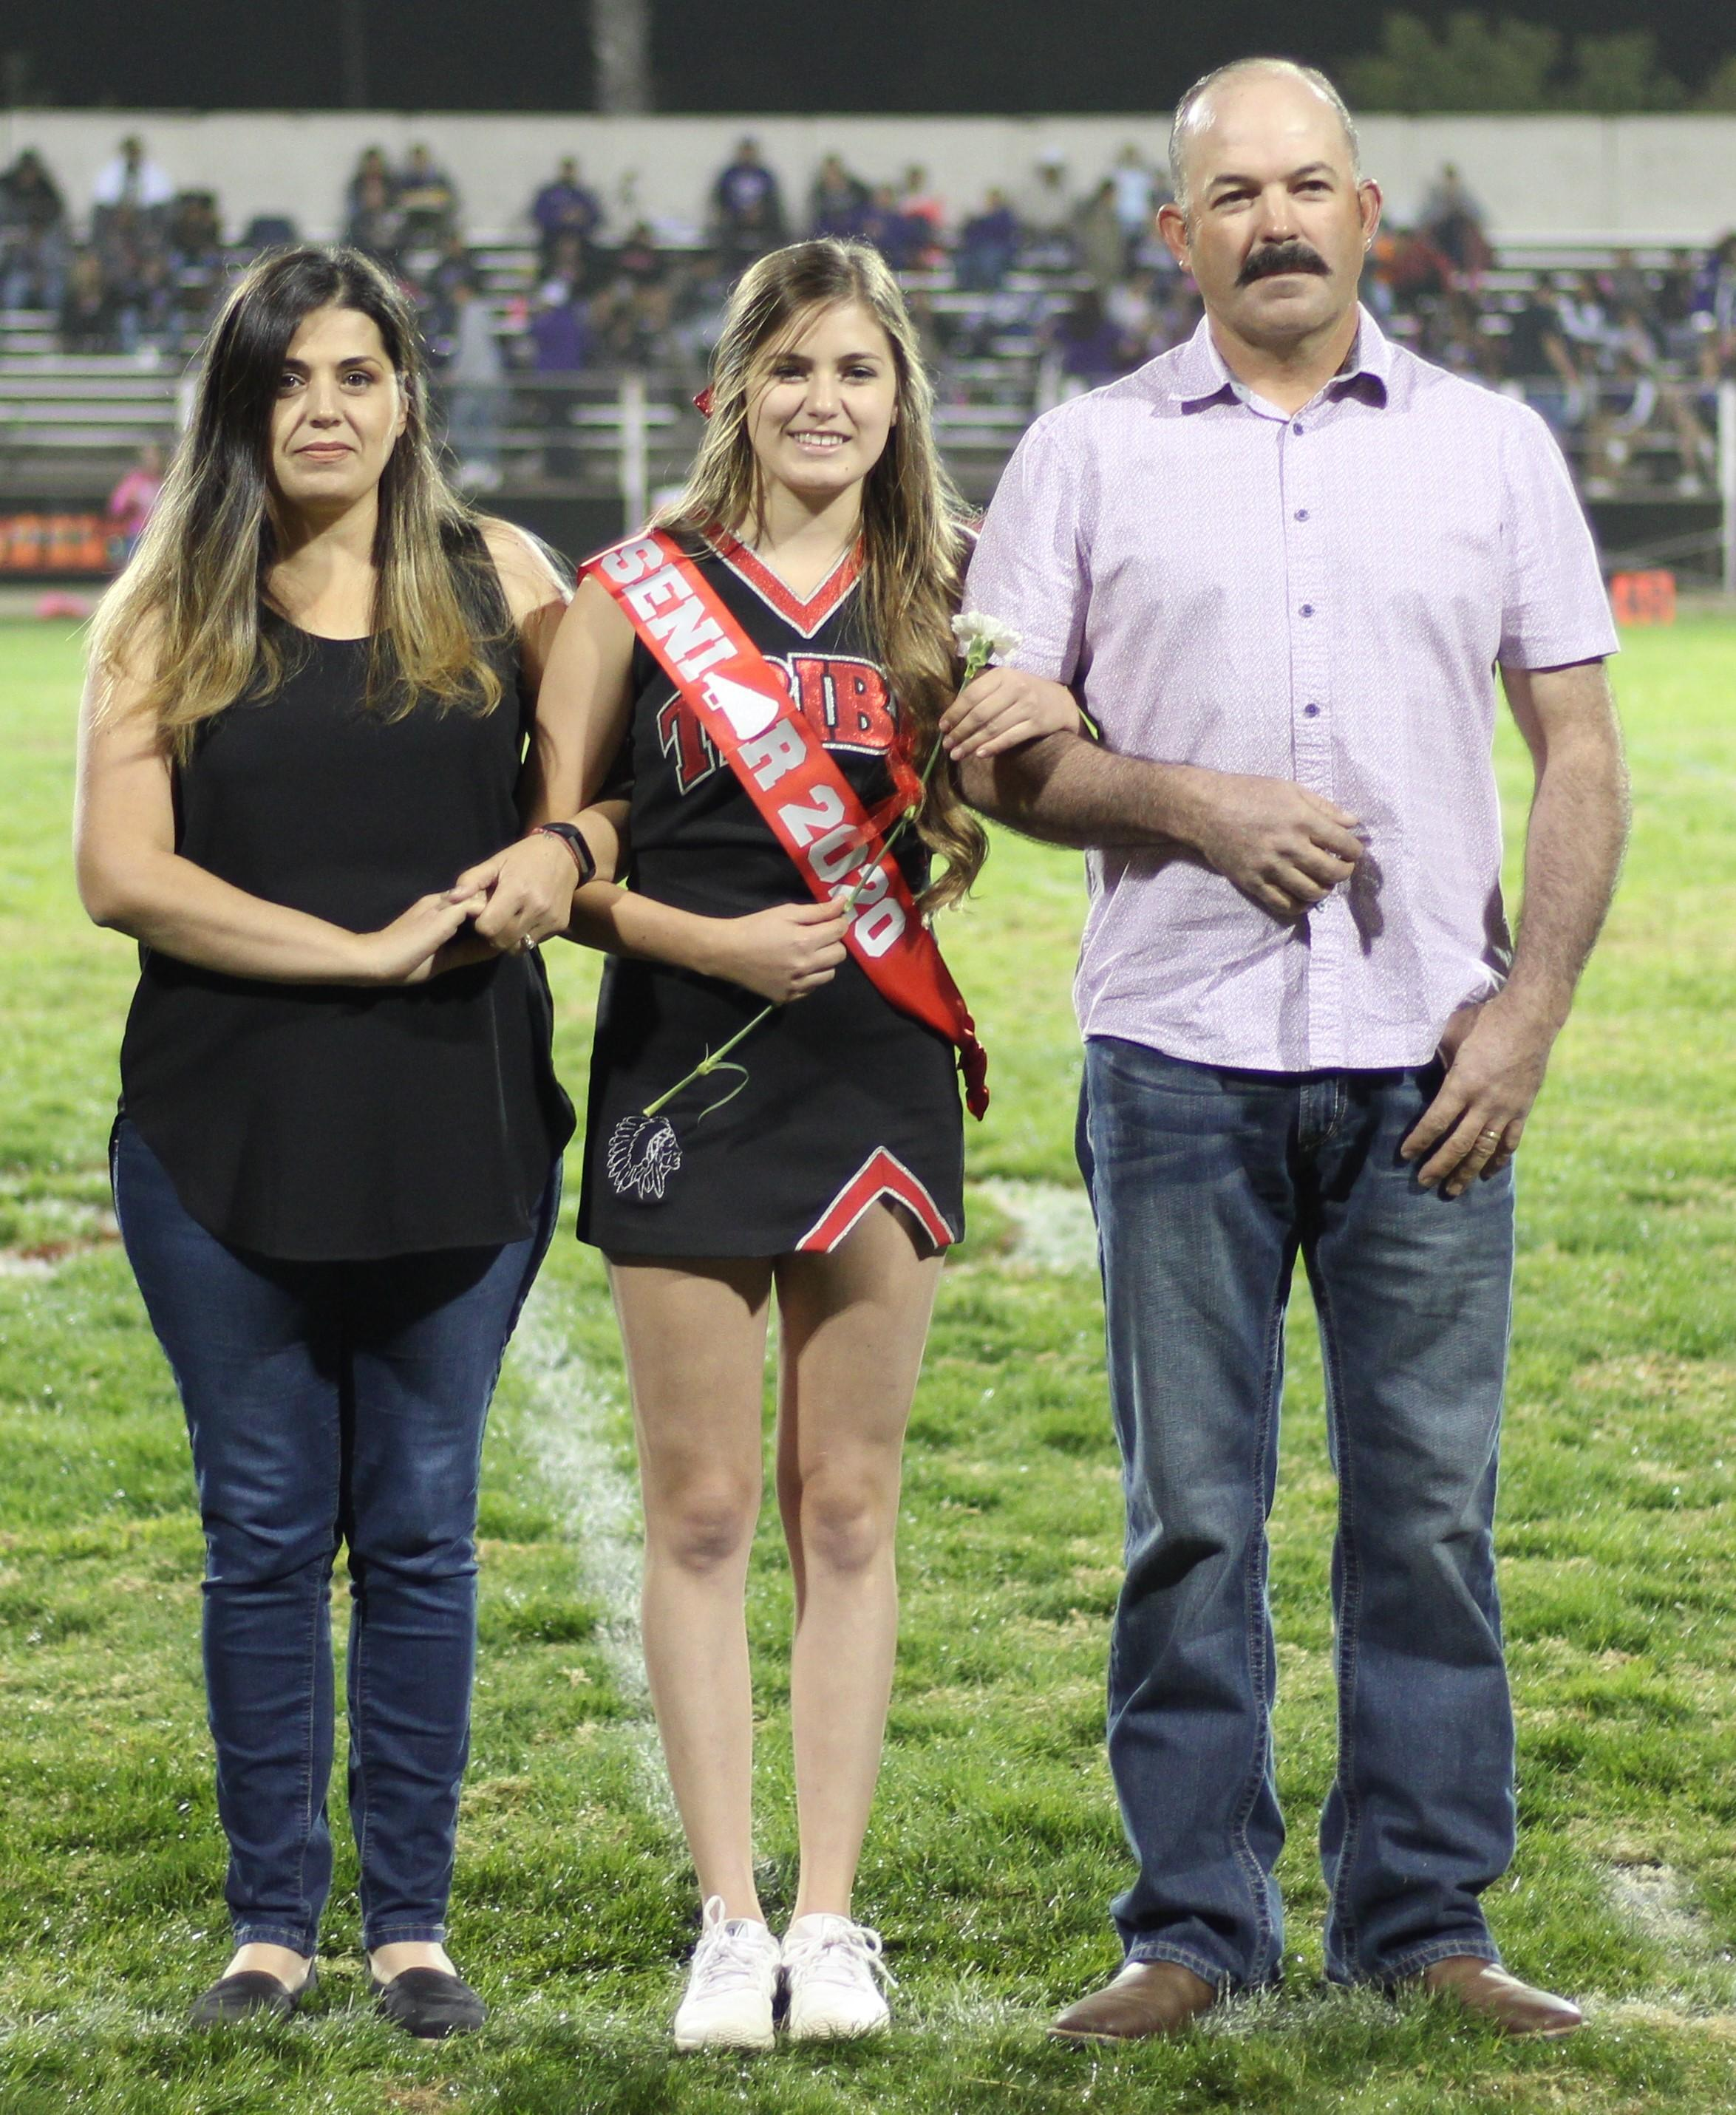 Senior cheerleader Vicki Jimenez and her escorts.